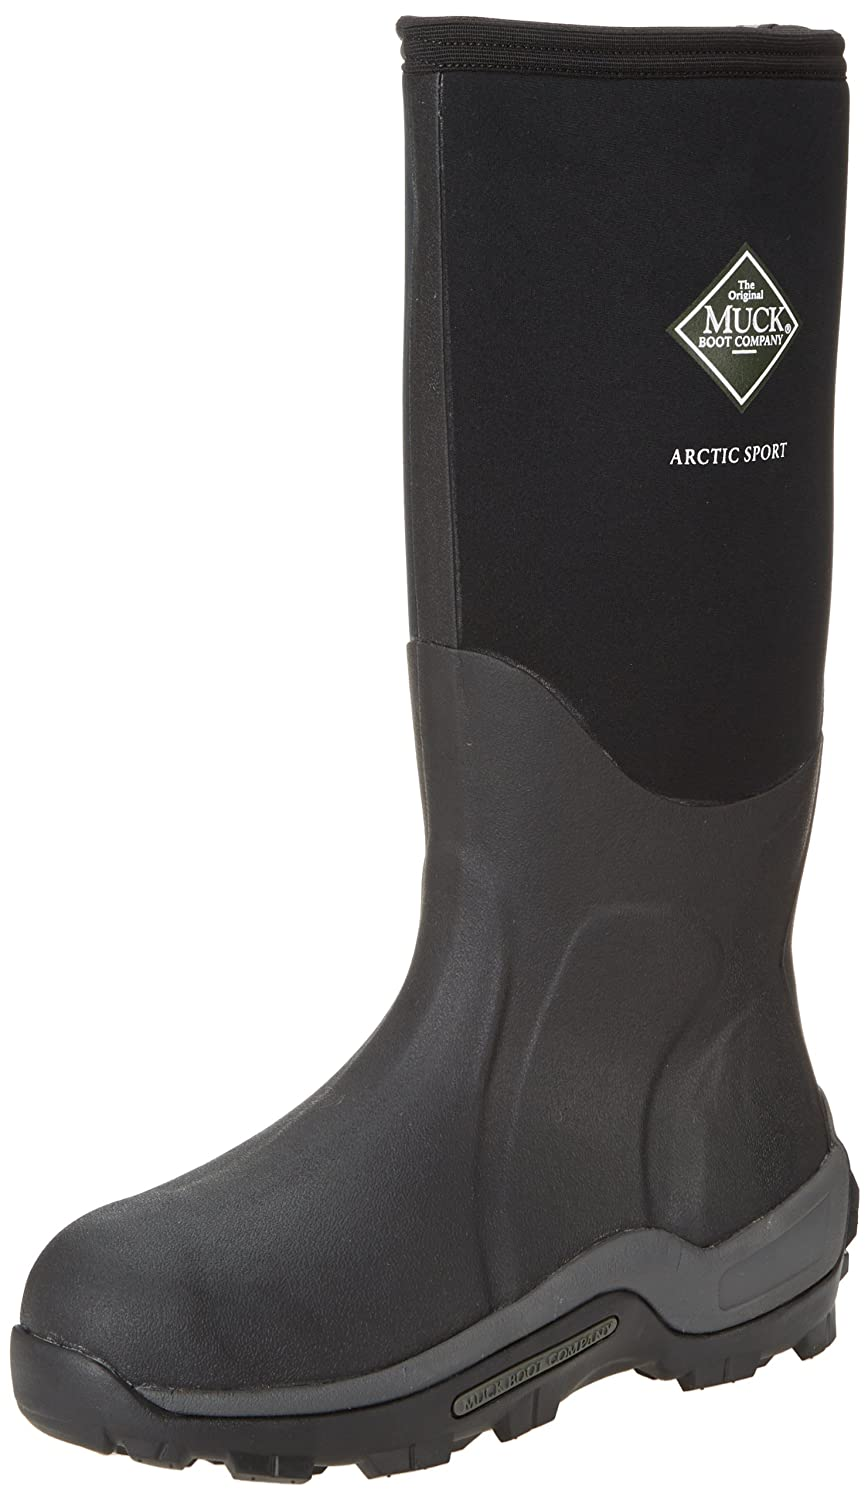 The Original MuckBoots Adult Arctic Sport Boot B000WG7B72 Men's 12 M/Women's 13 M|Black